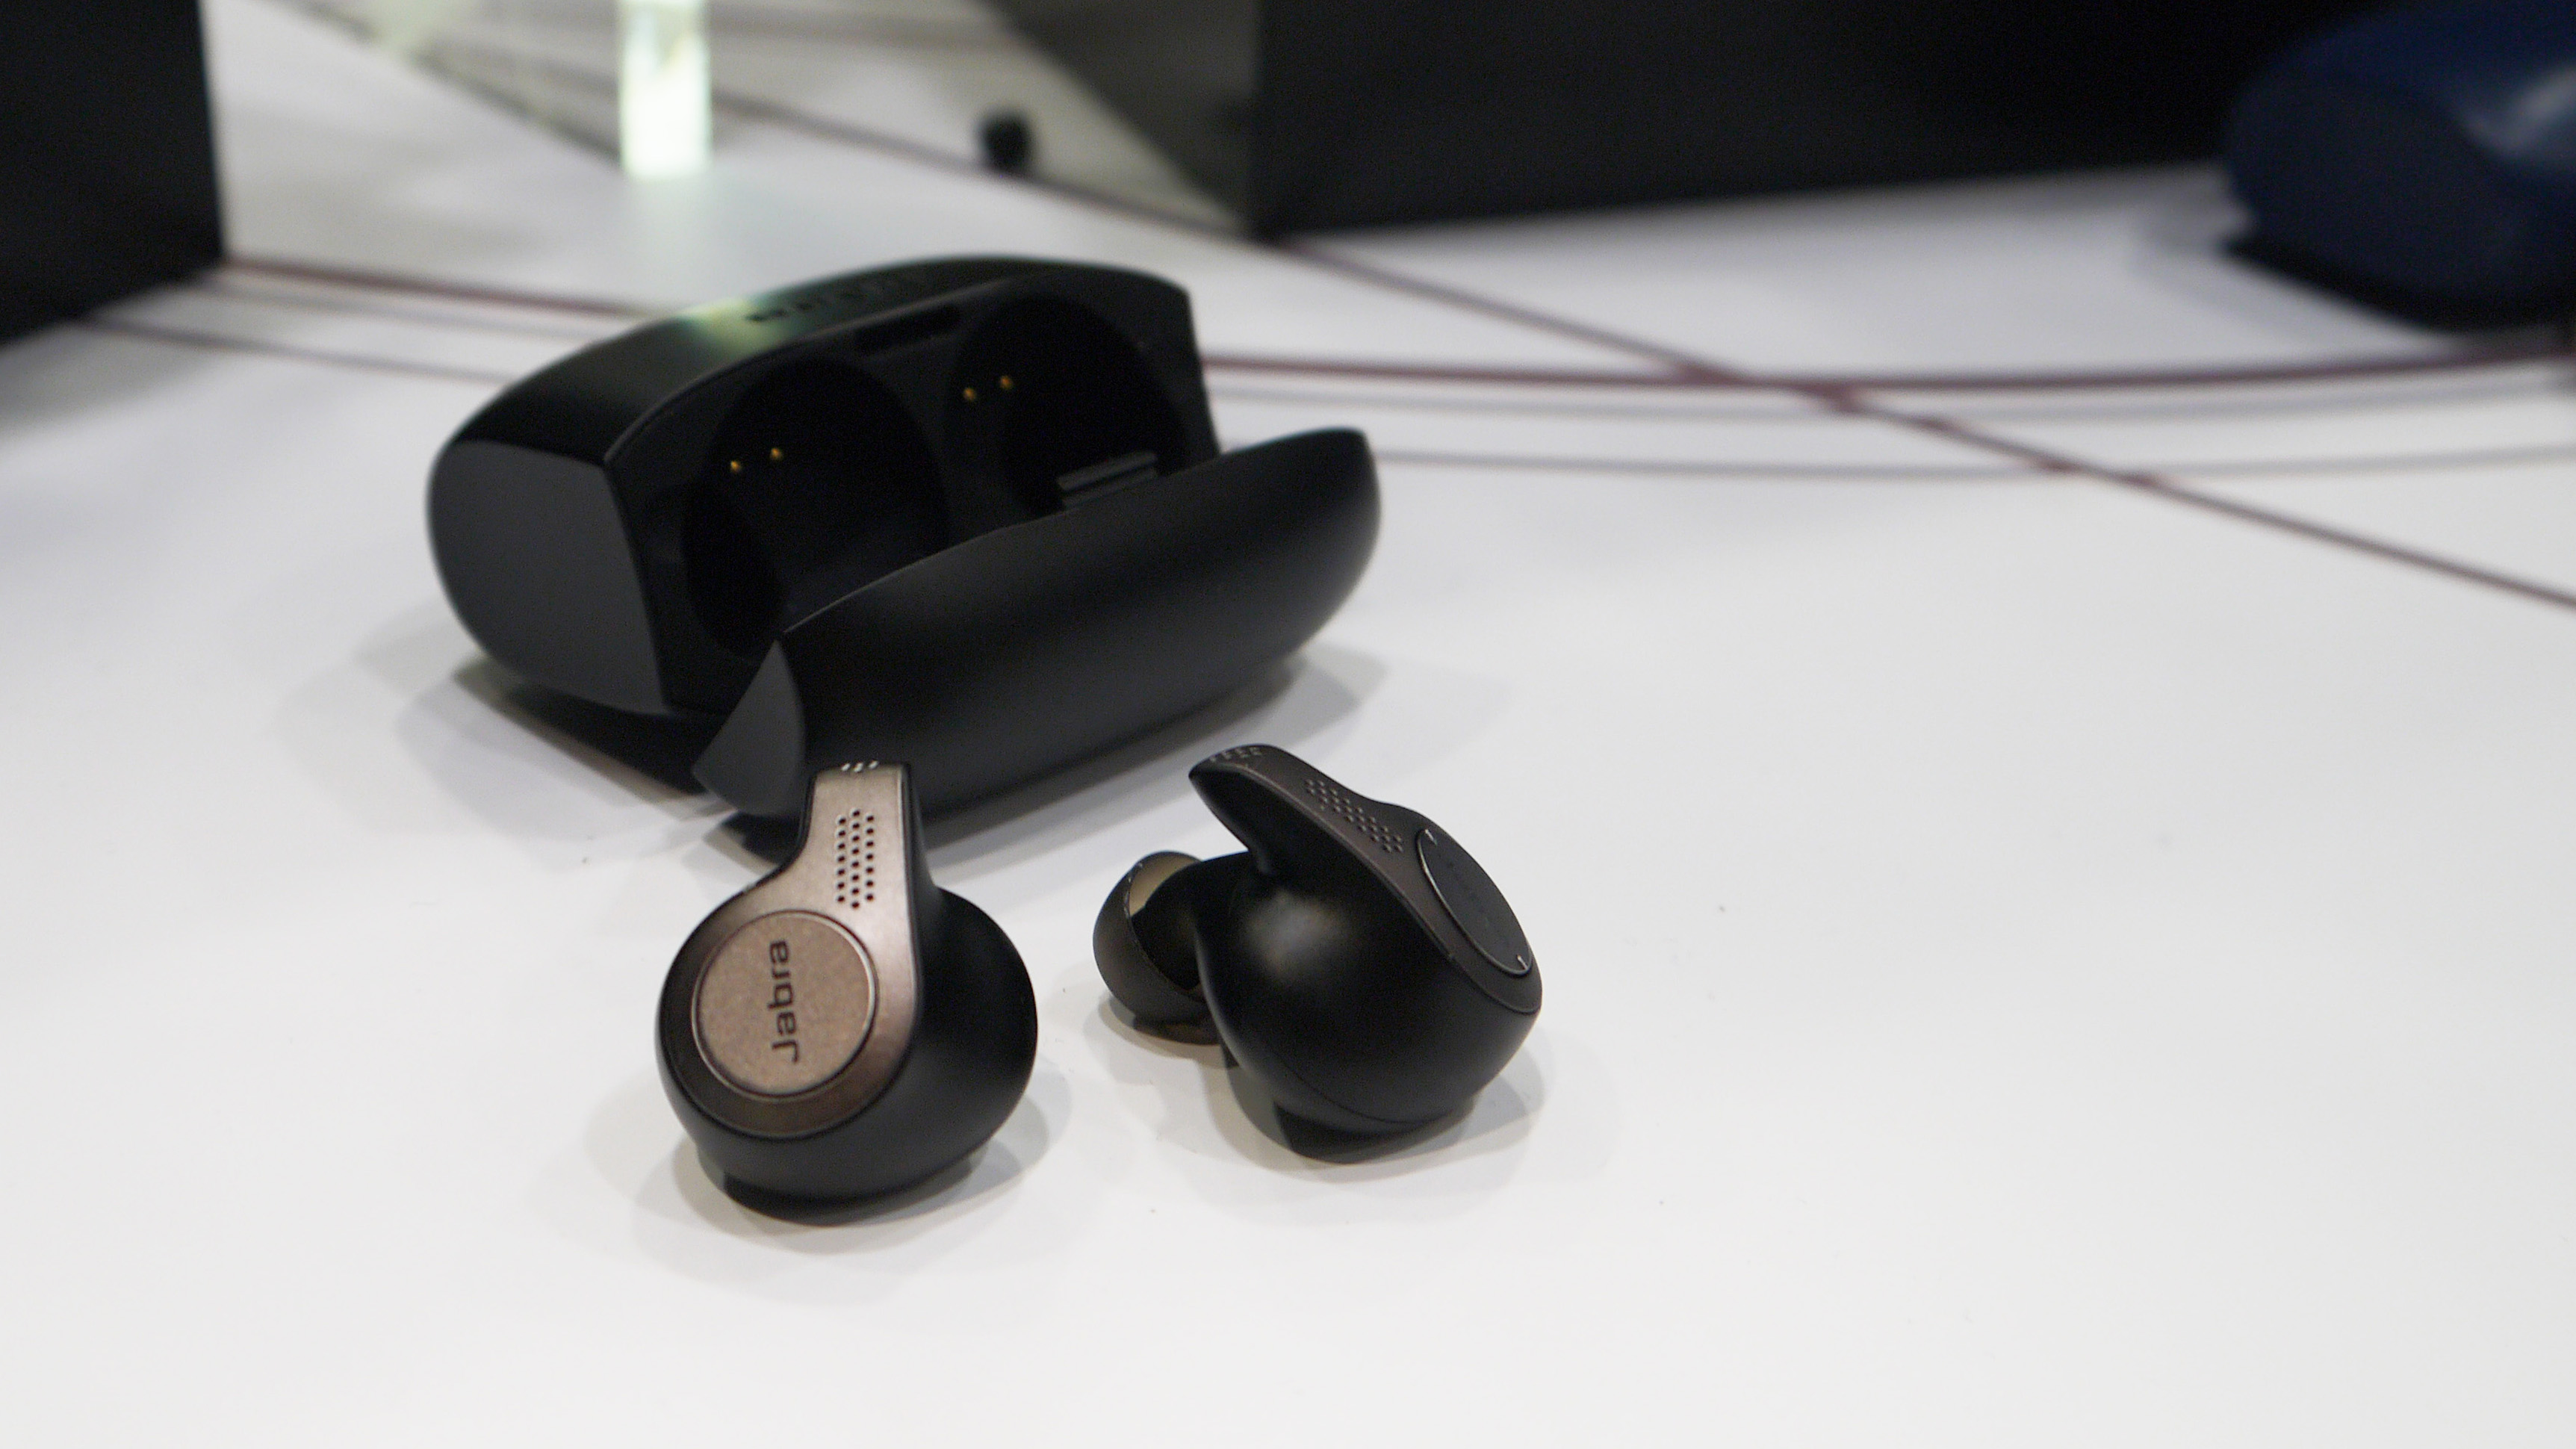 Jabra Elite Active 65t Give You True Wireless Sound At 118 99 For Prime Day Techradar